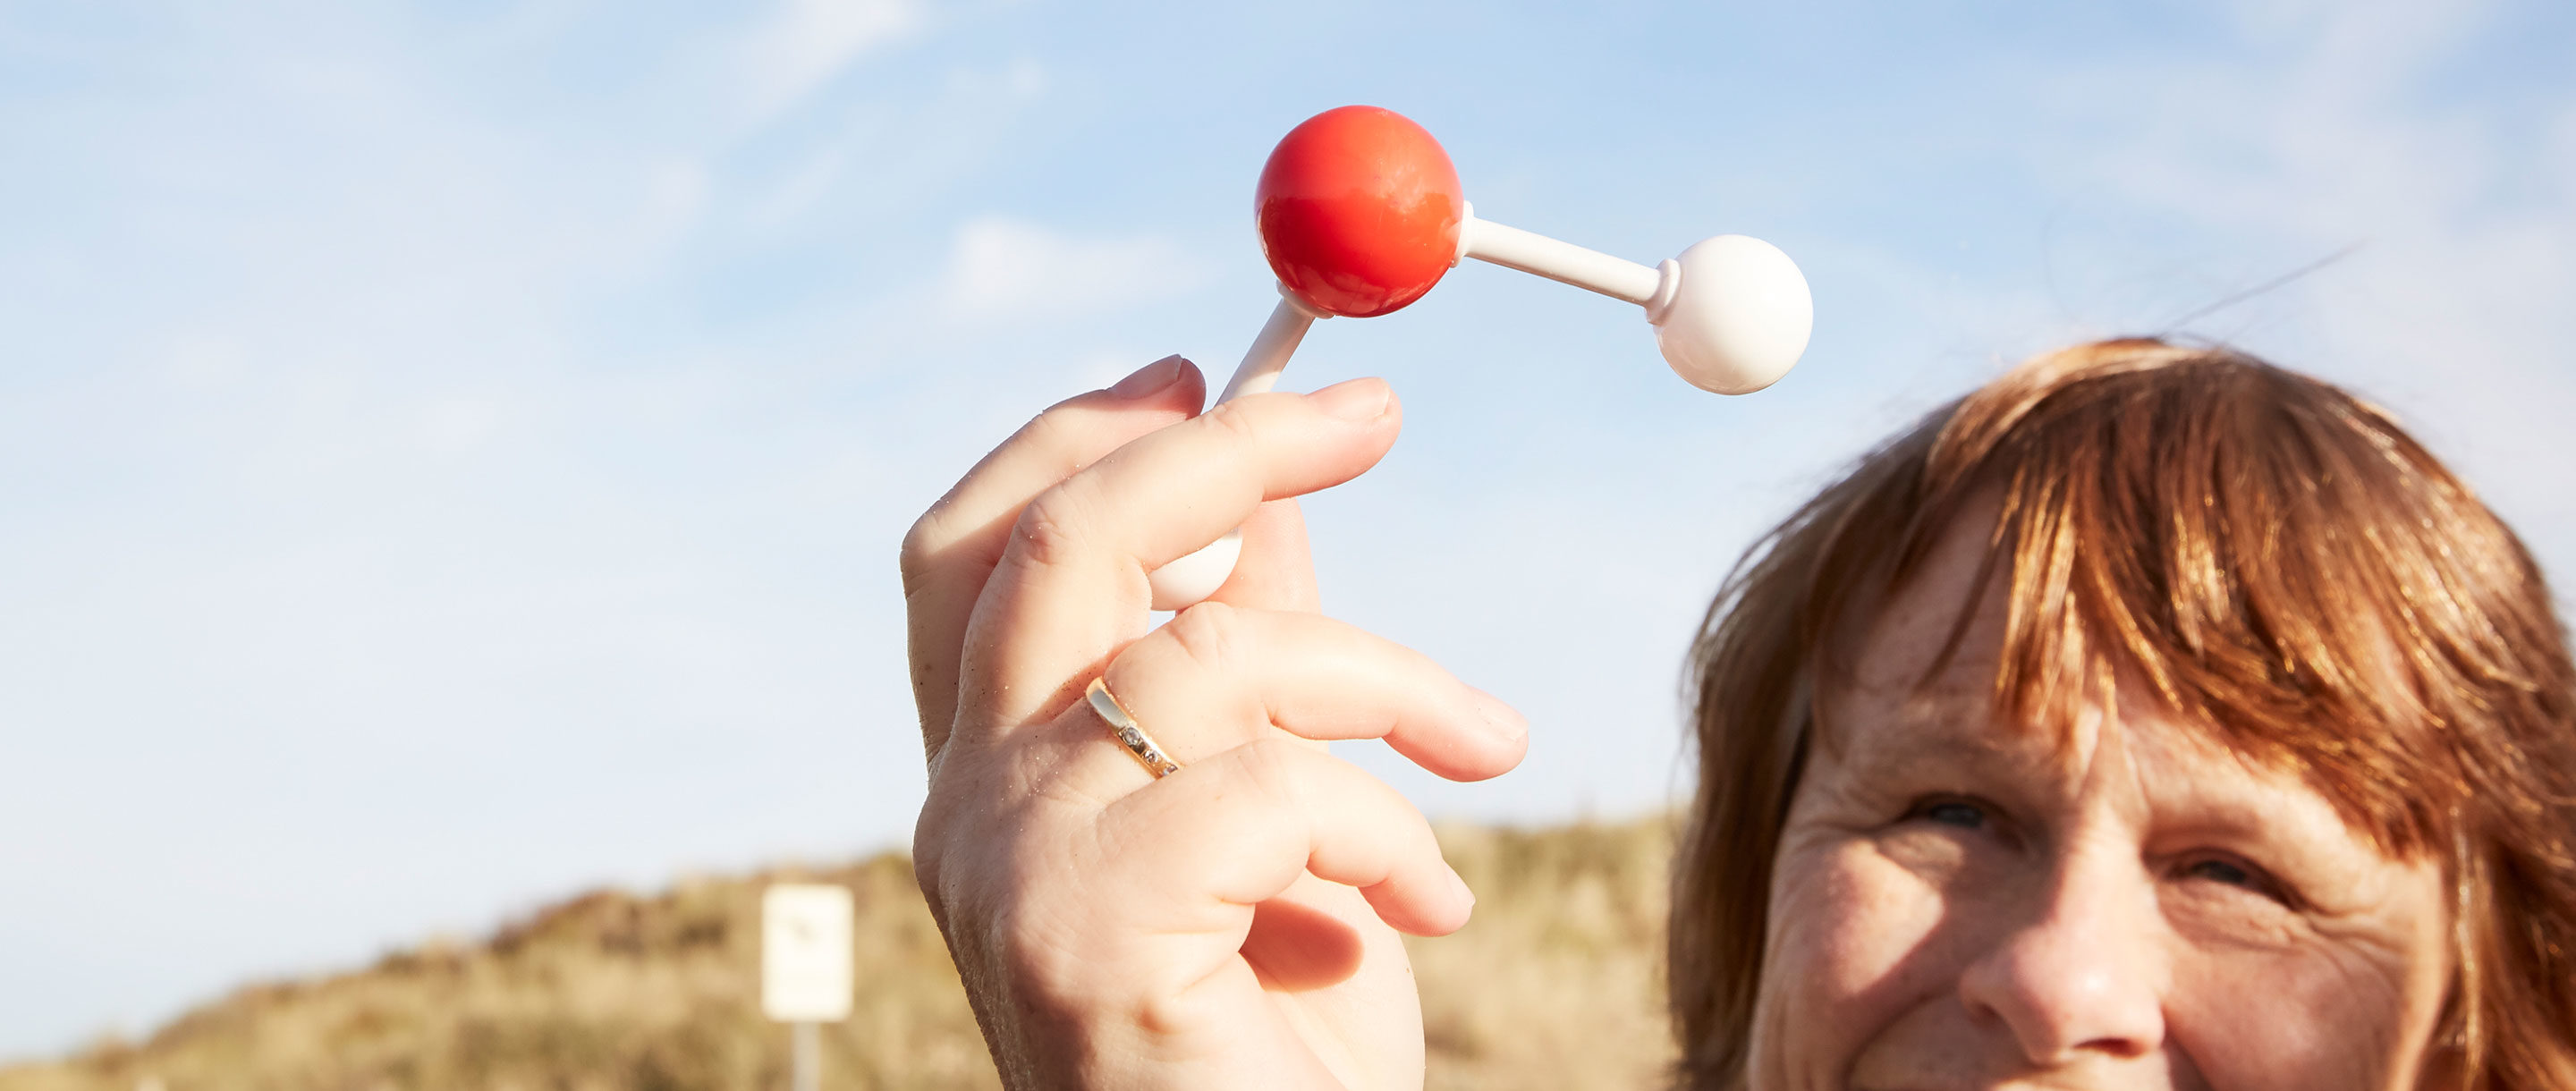 Ewine van Dishoeck at Noordwijk beach in the Netherlands, holding up a water molecule model.